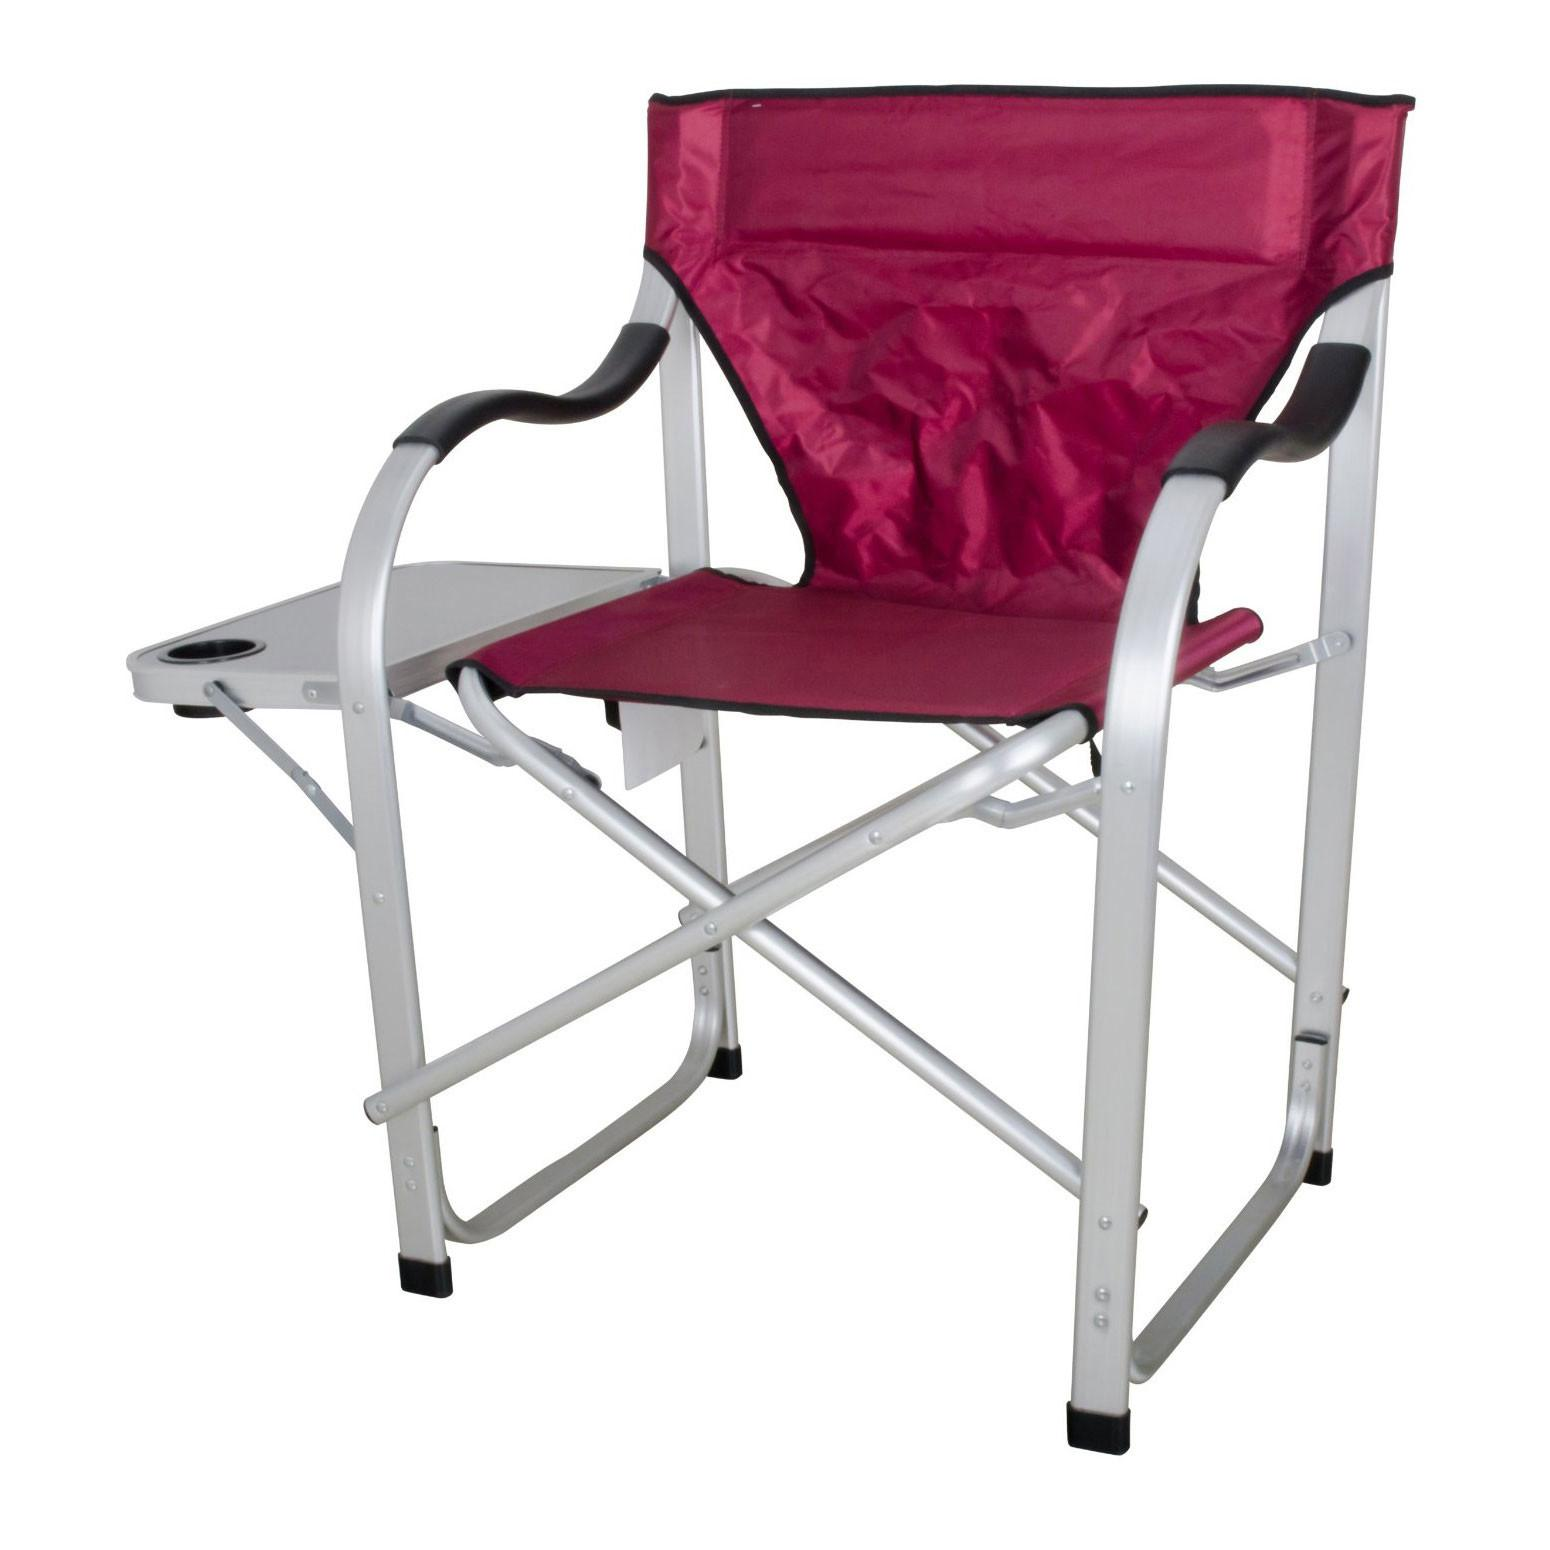 Awesome Heavy Duty Camping Chairs Rtty1